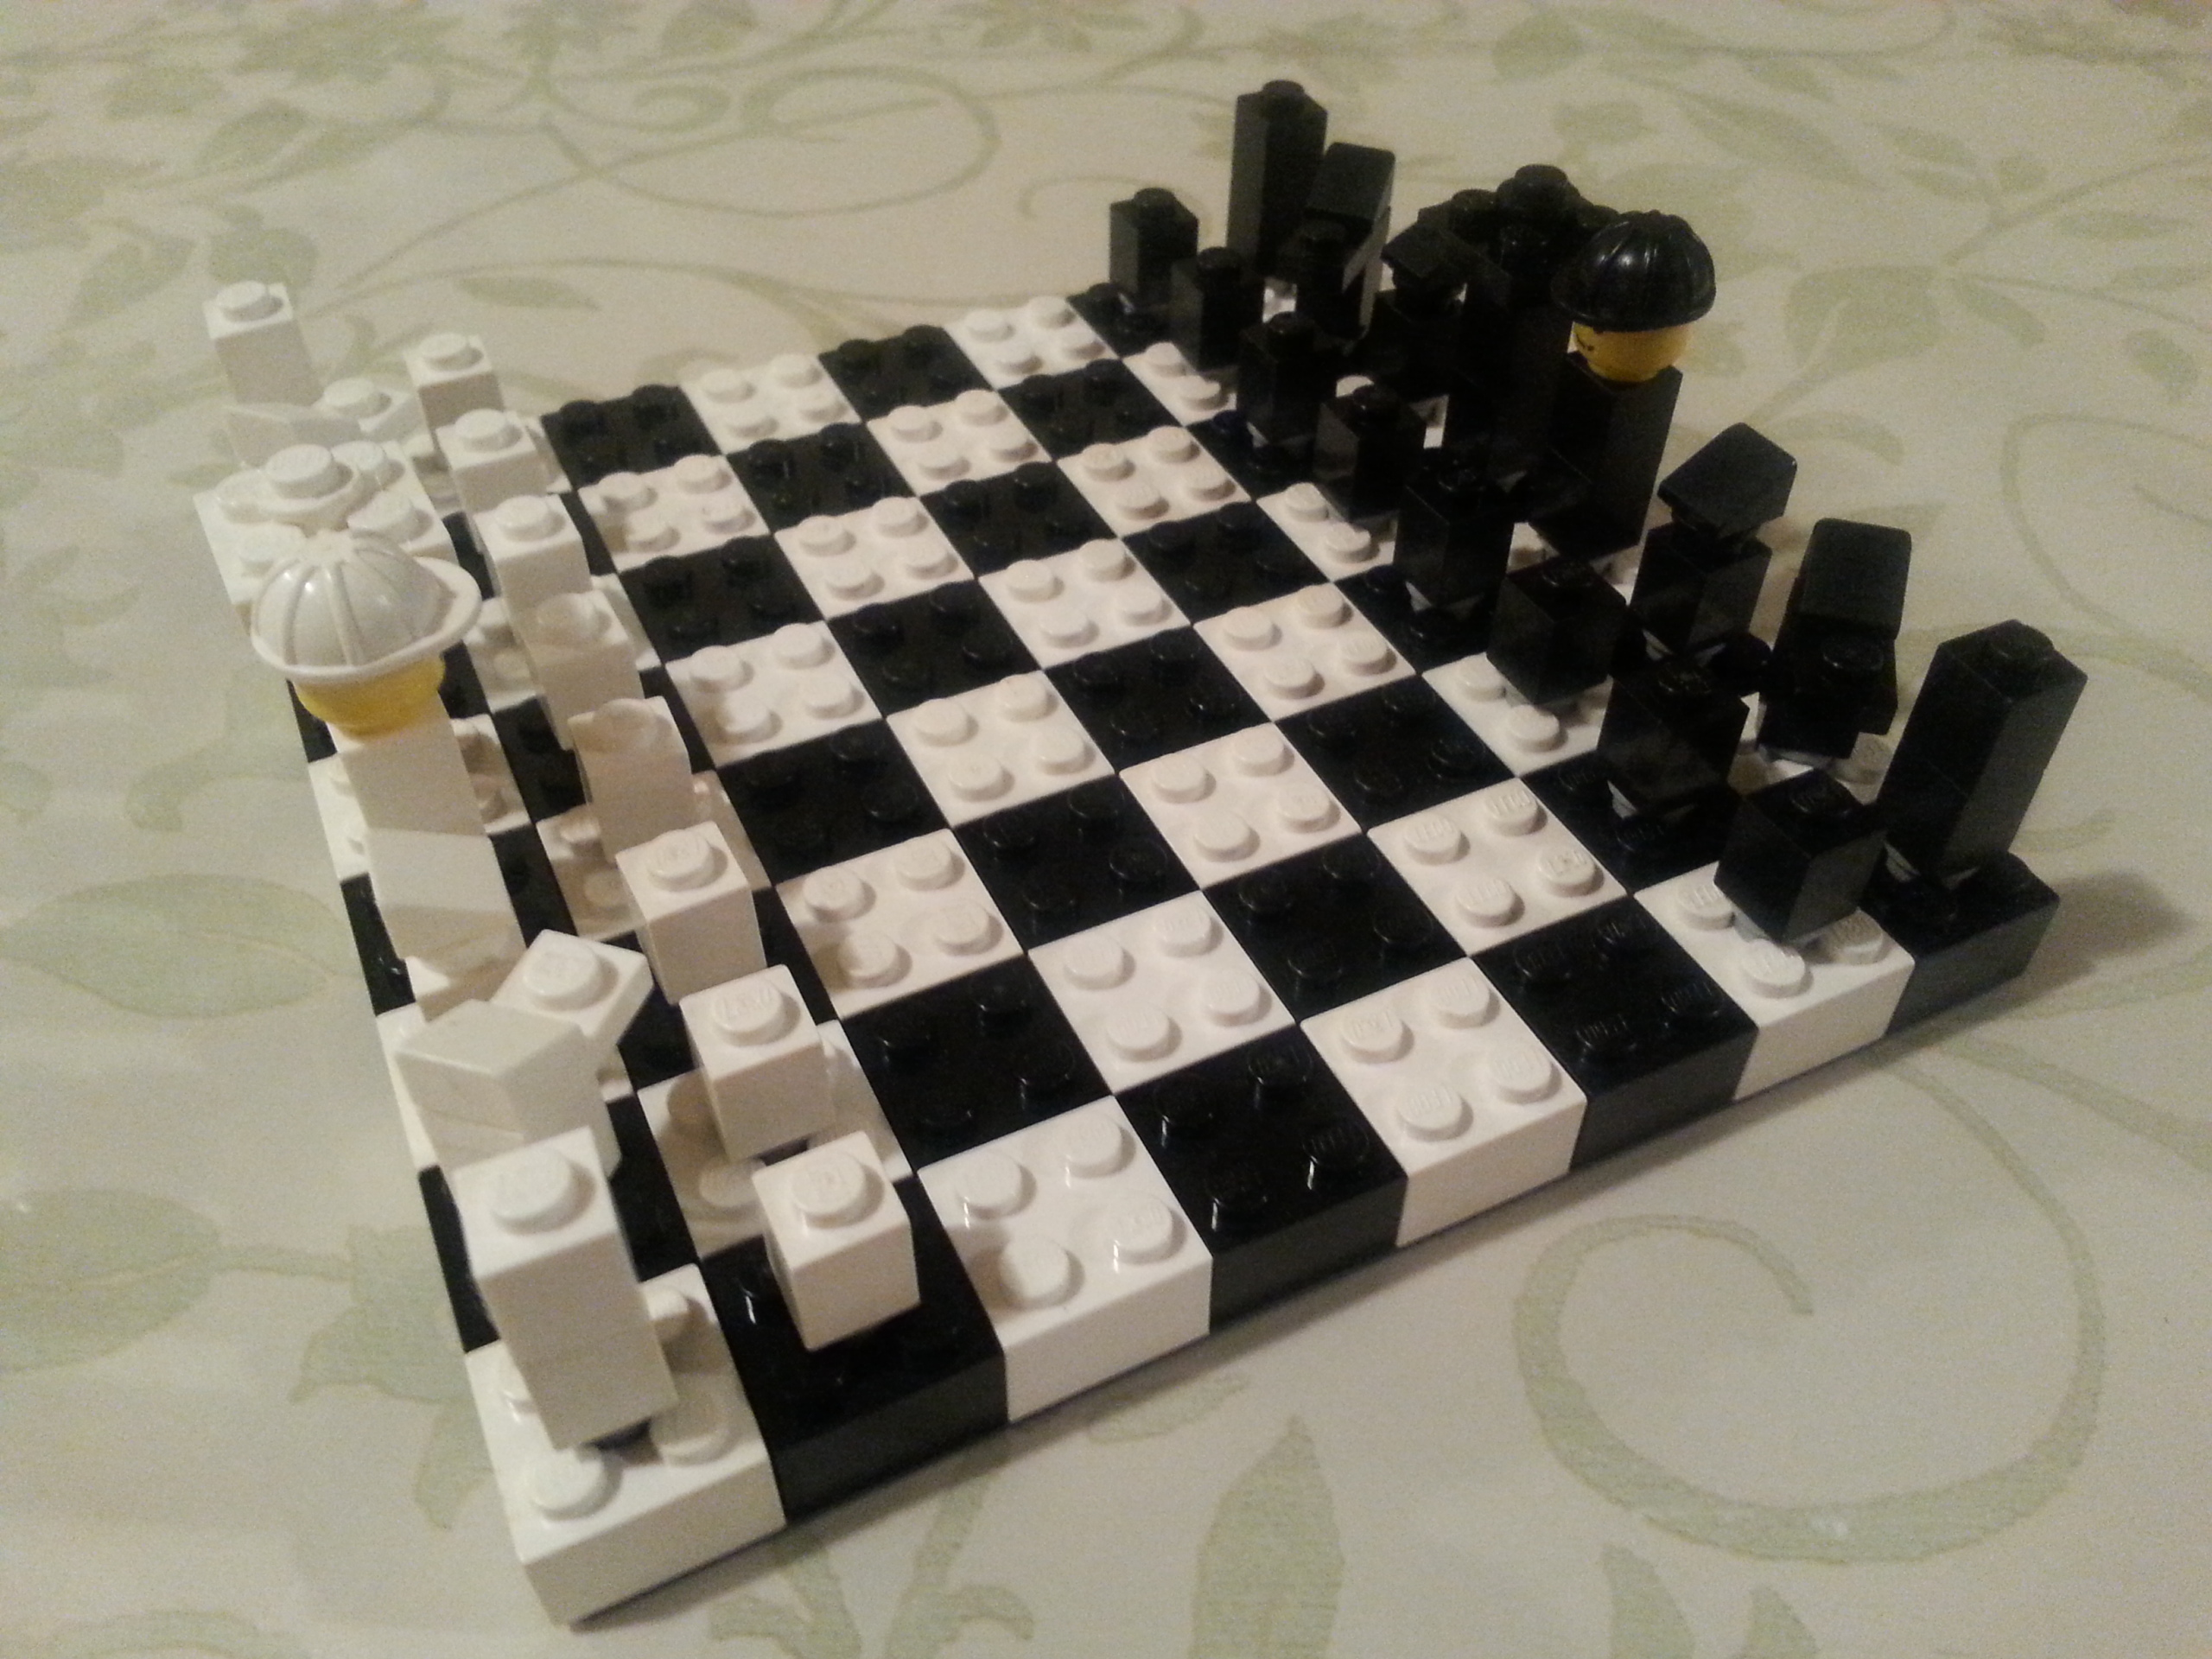 Picture of Ready for a Game of Chess!